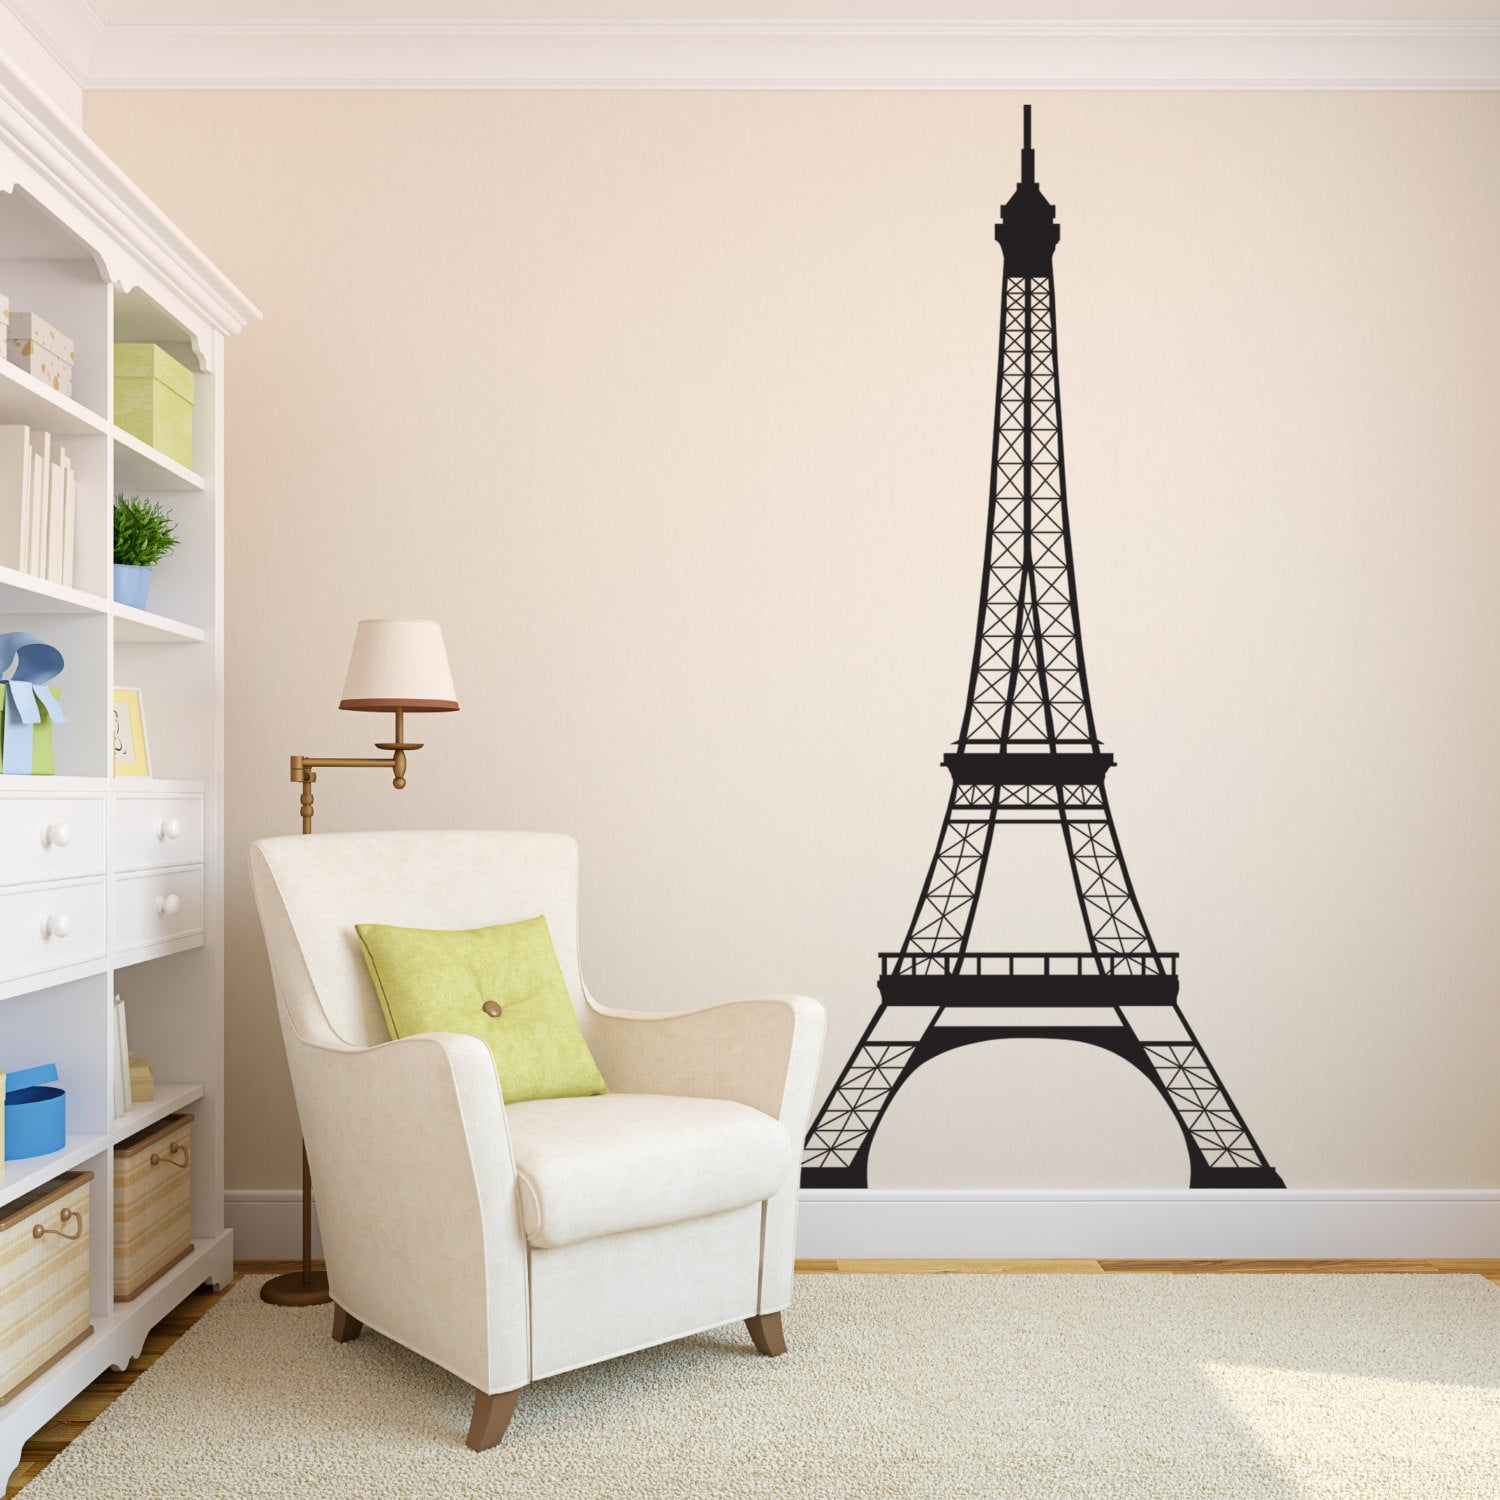 Perfect Eiffel Tower Wall Decal   7 Feet High Decal   Paris Wall Decor   Stephen  Edward Graphics